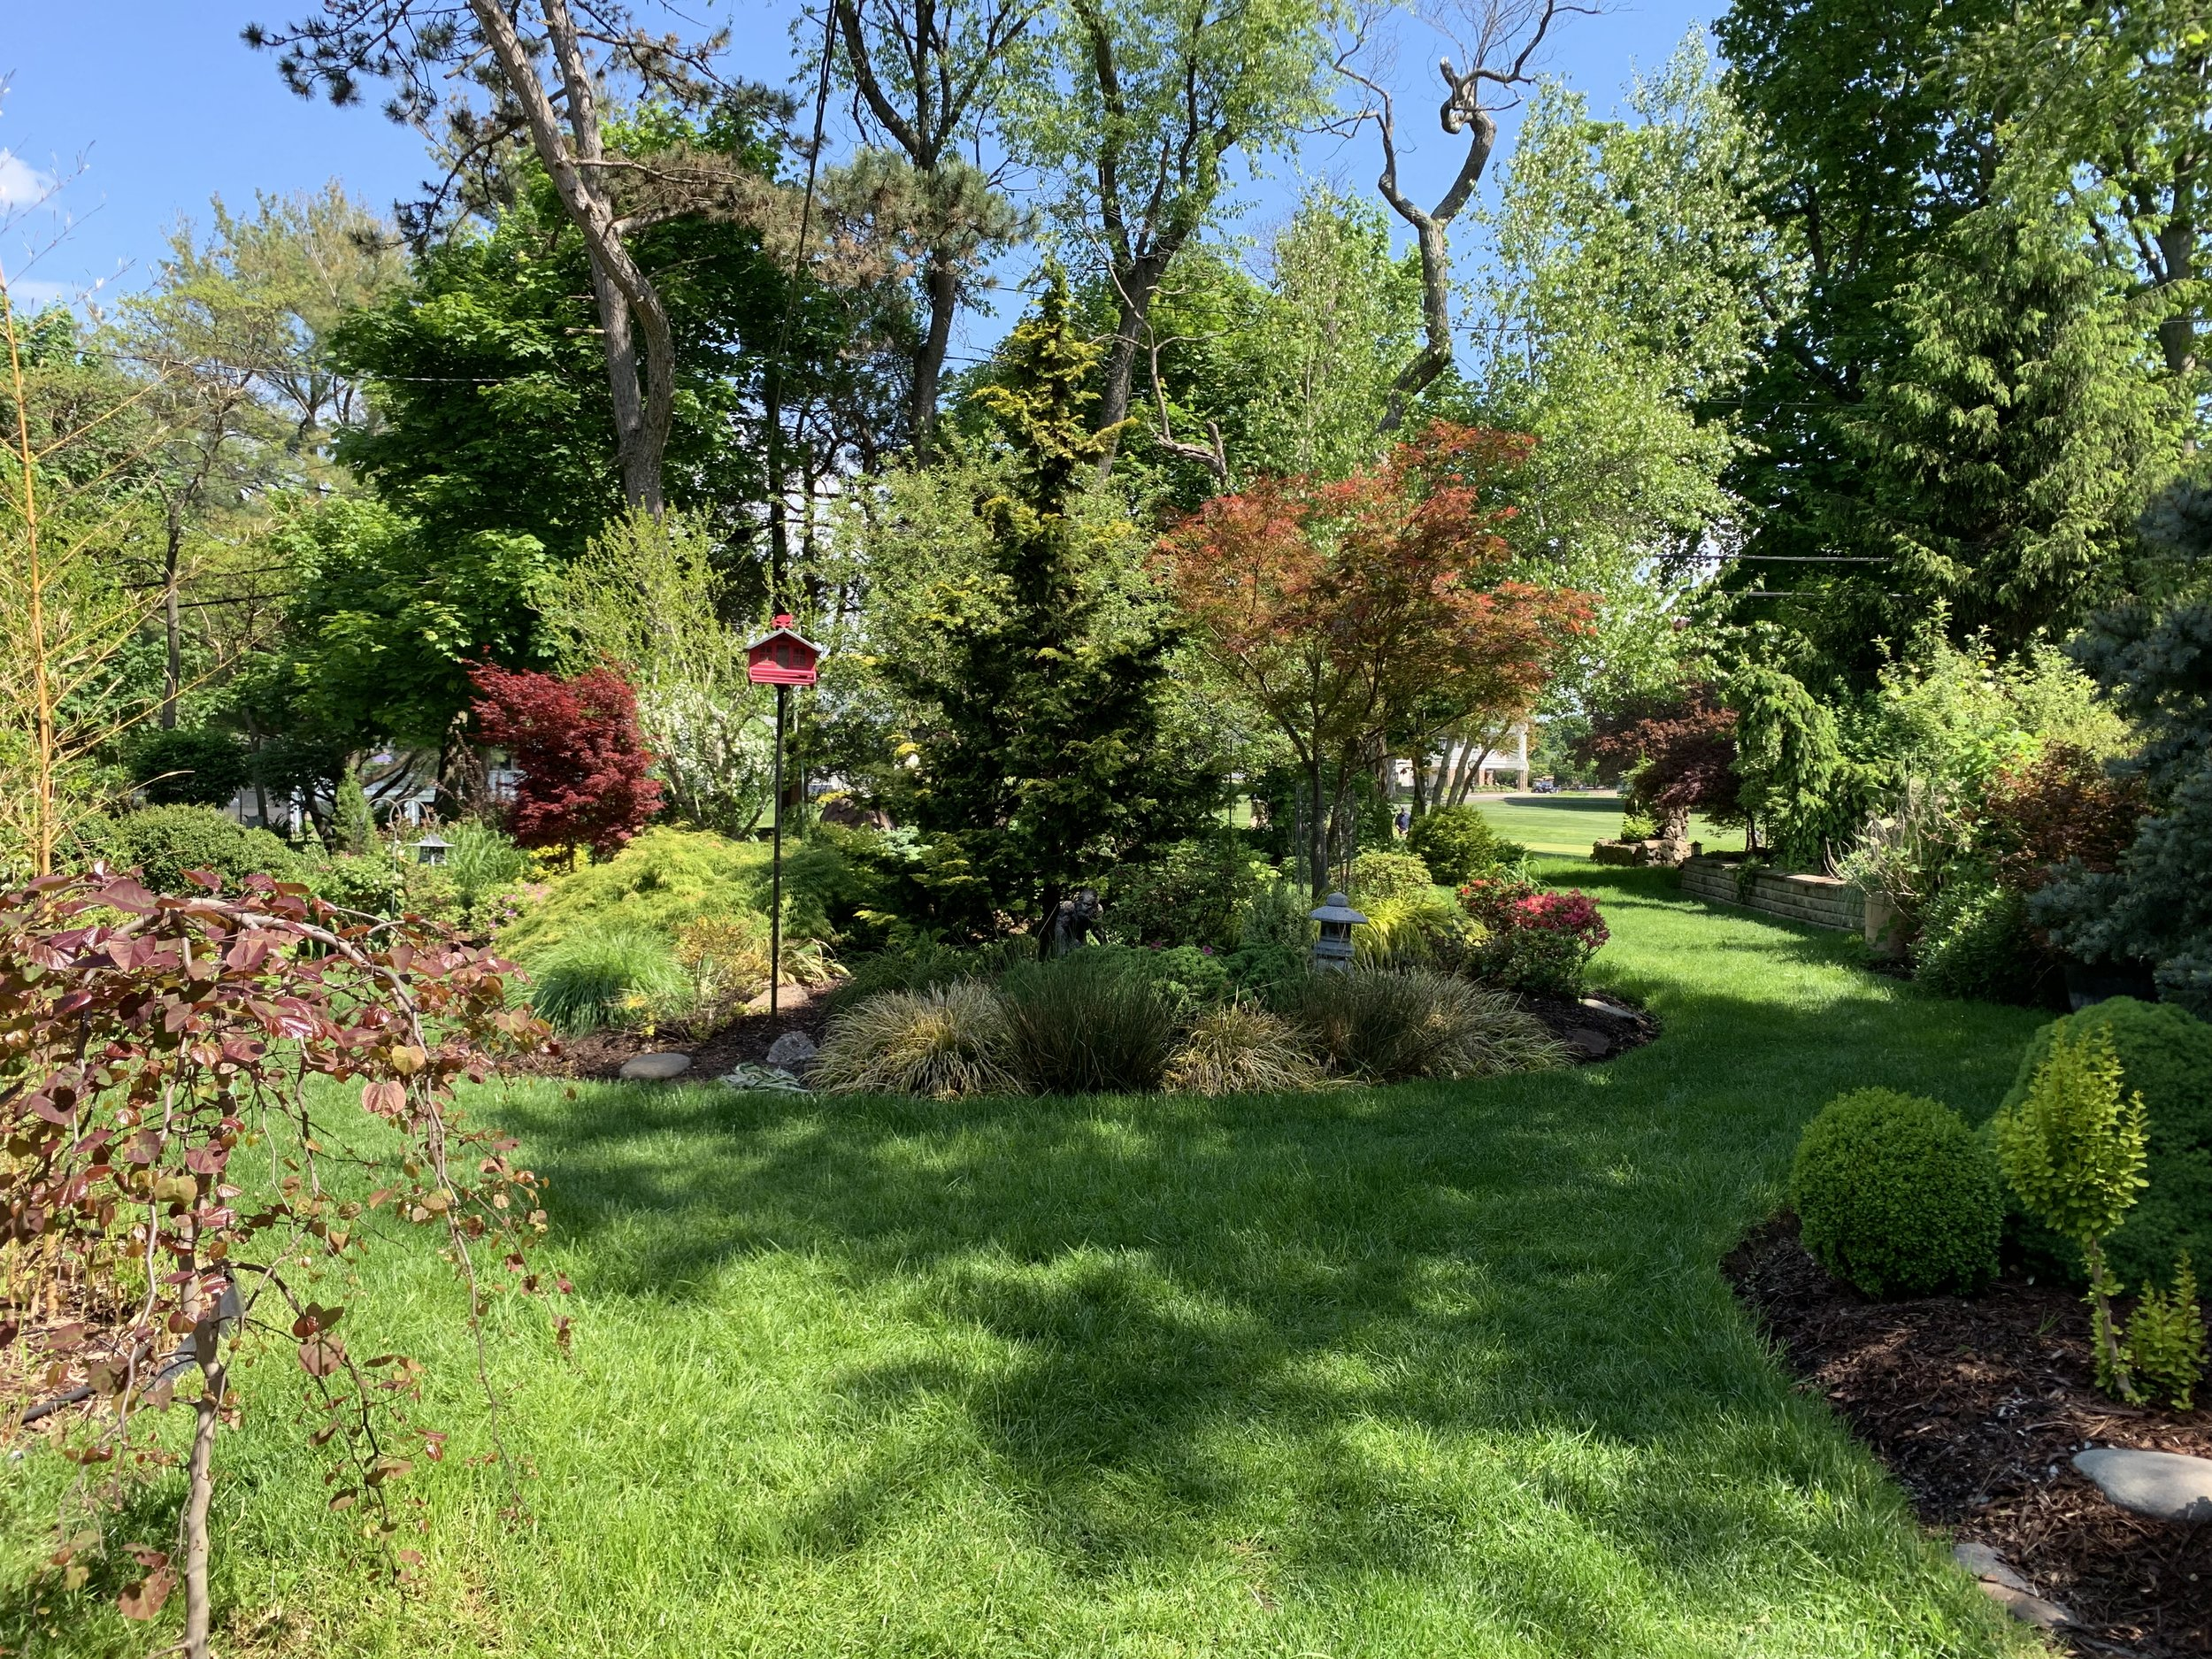 Private Glen Ridge, New Jersey Garden on the Van Vleck Roses to Rock Gardens Tour